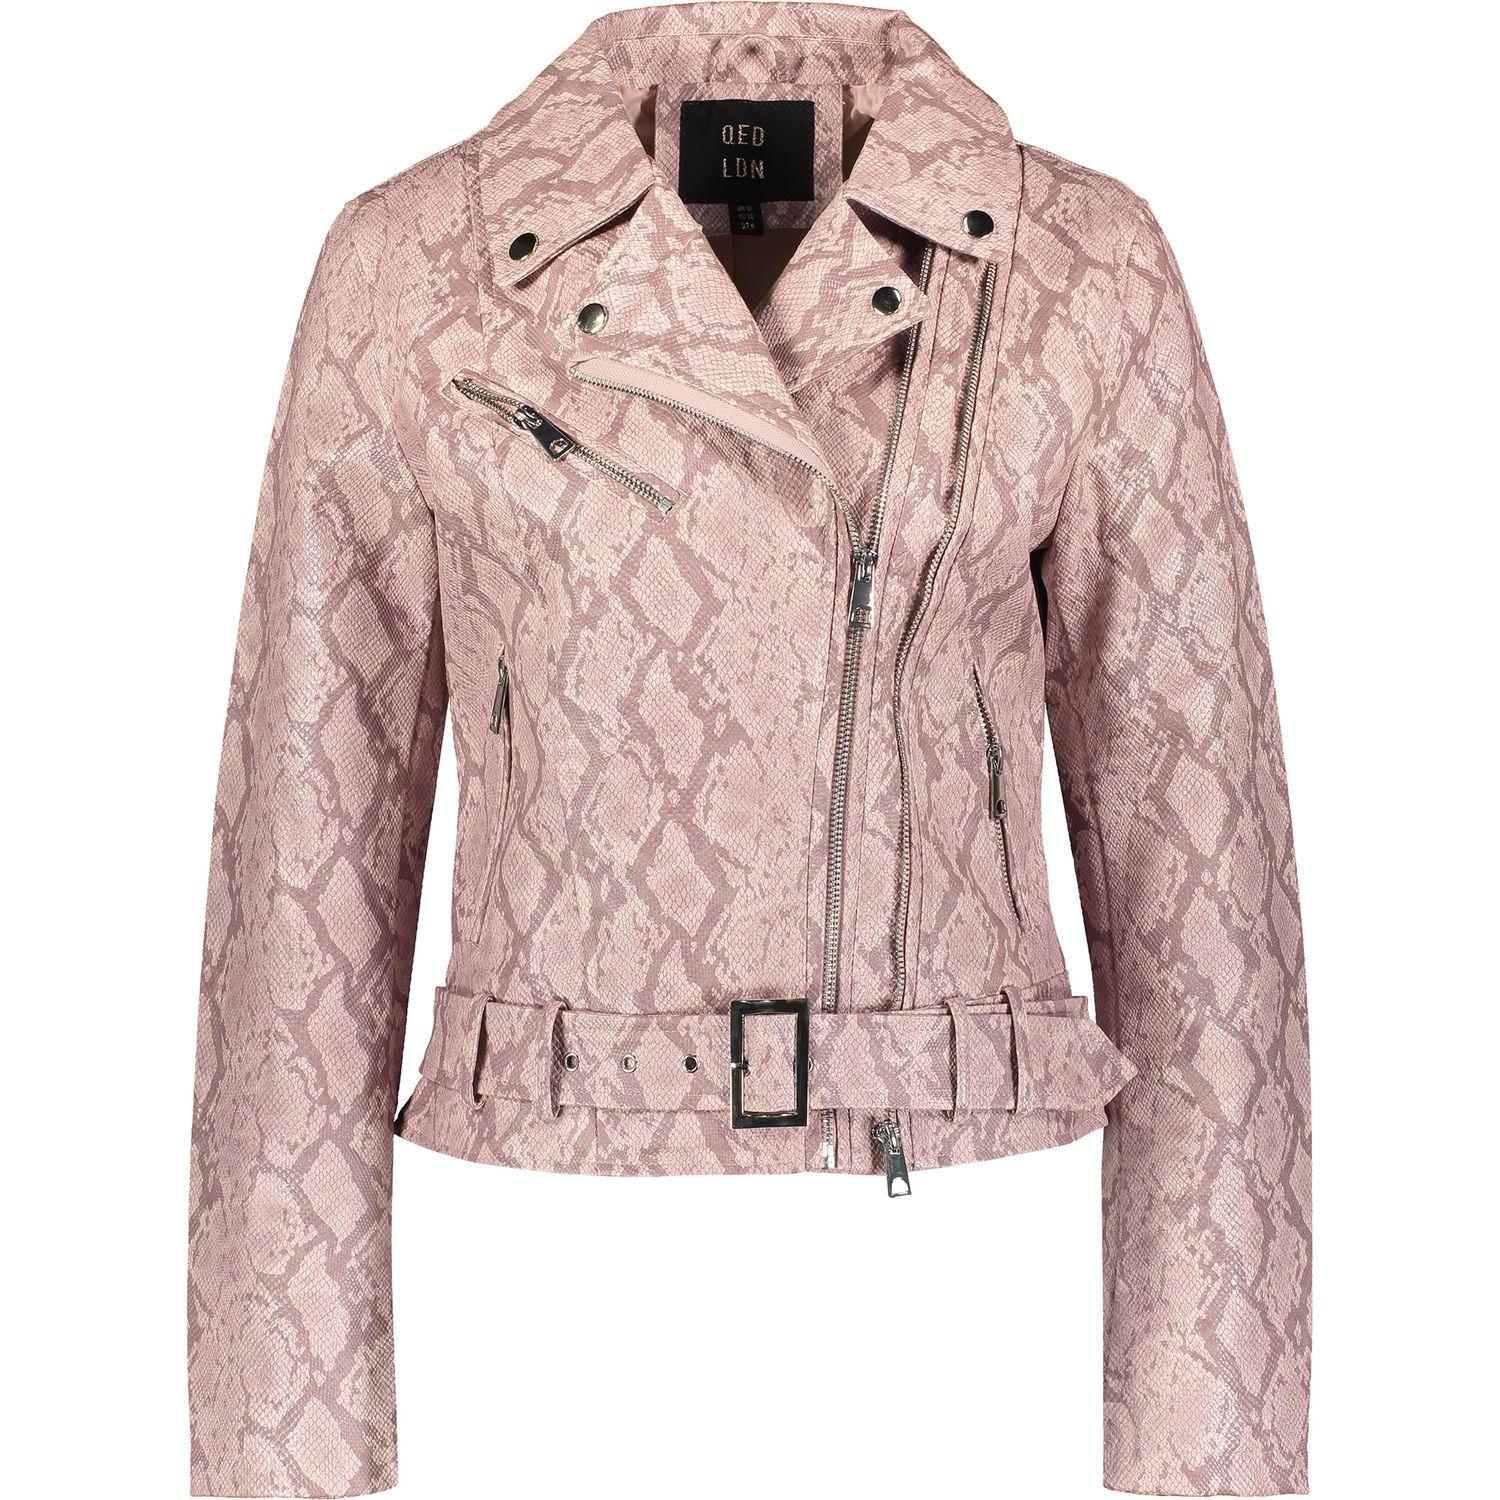 Tk Maxx Barbour Jacket Cheaper Than Retail Price Buy Clothing Accessorie And Lifestyle Product For Women Men Paraphrase